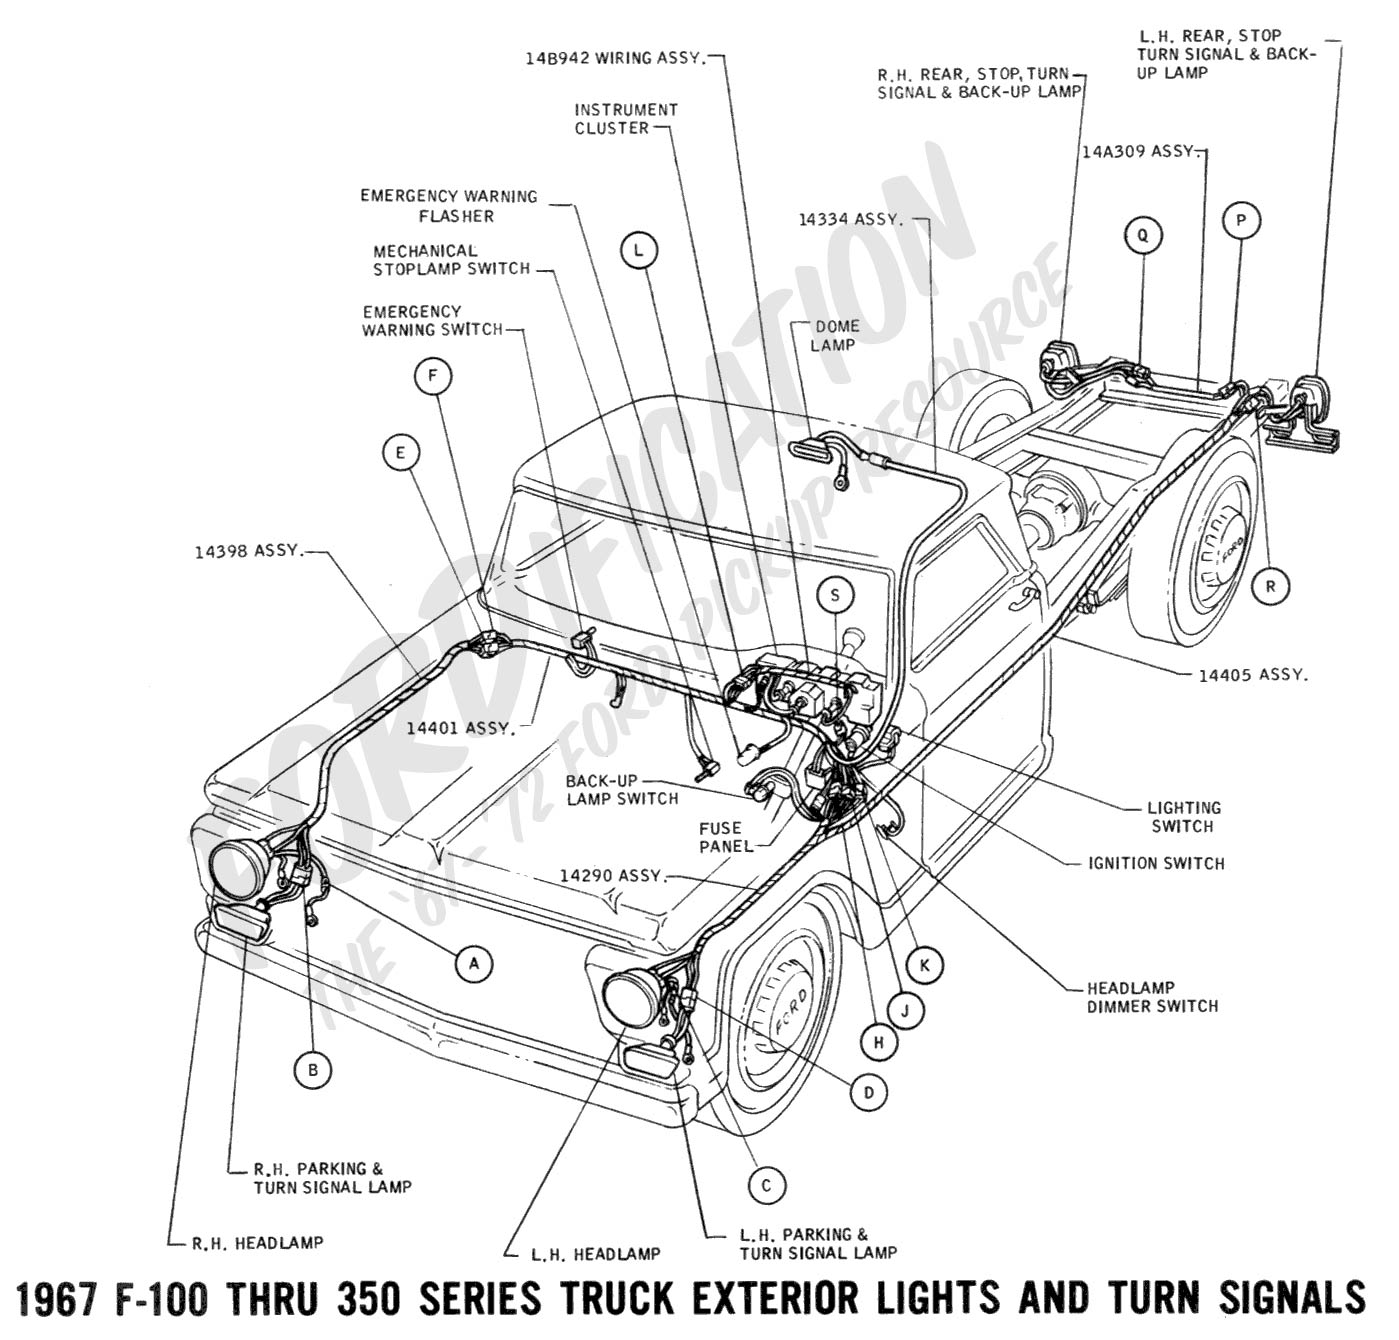 1981 Ford F350 Fuel System Diagram - Schematic Wiring Diagram